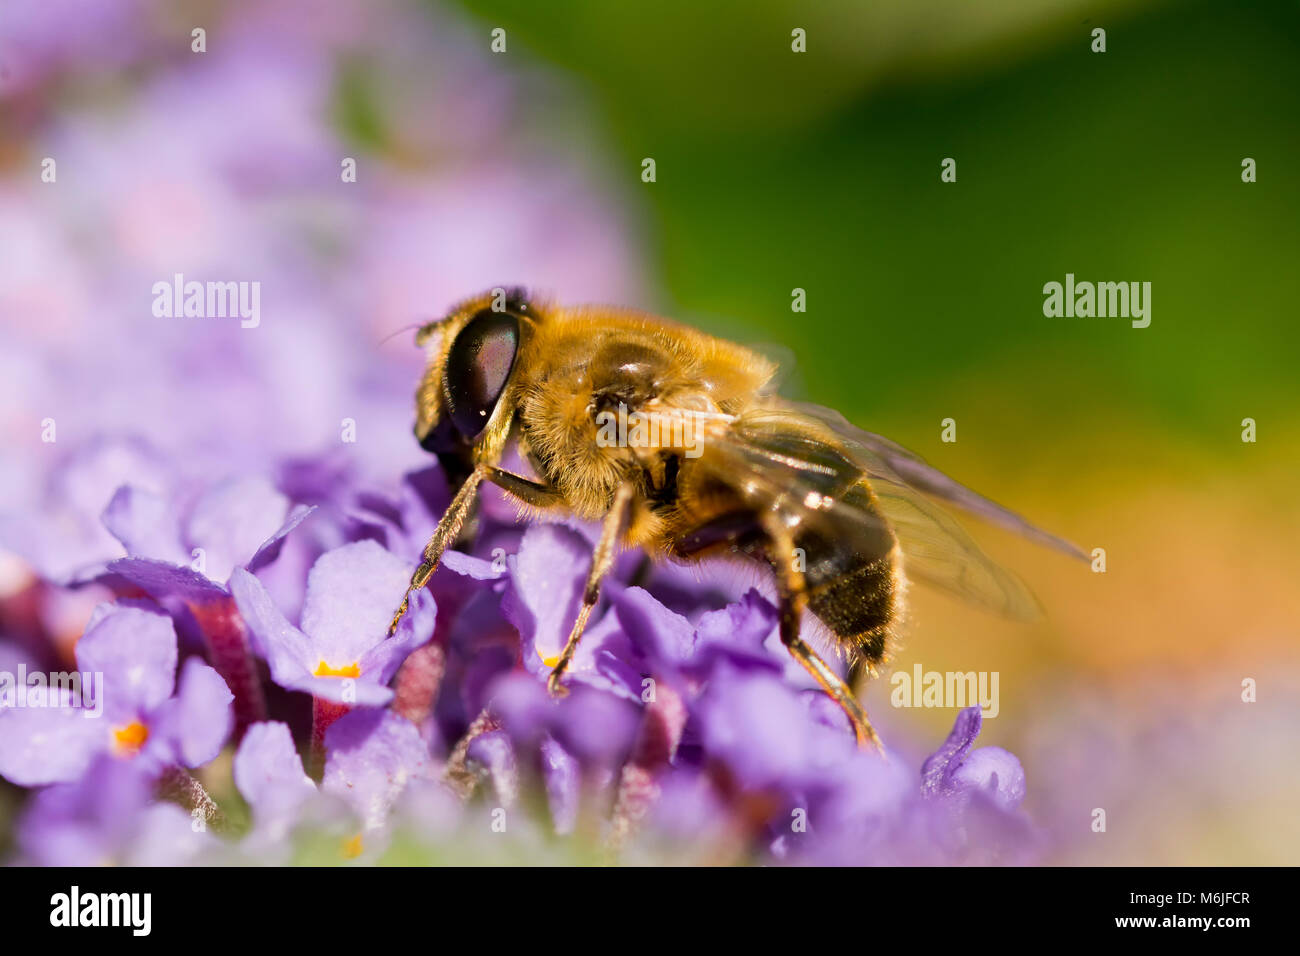 Close up of a Bee on a Buddleia. The details of this bee's compound eye are fascinating. - Stock Image